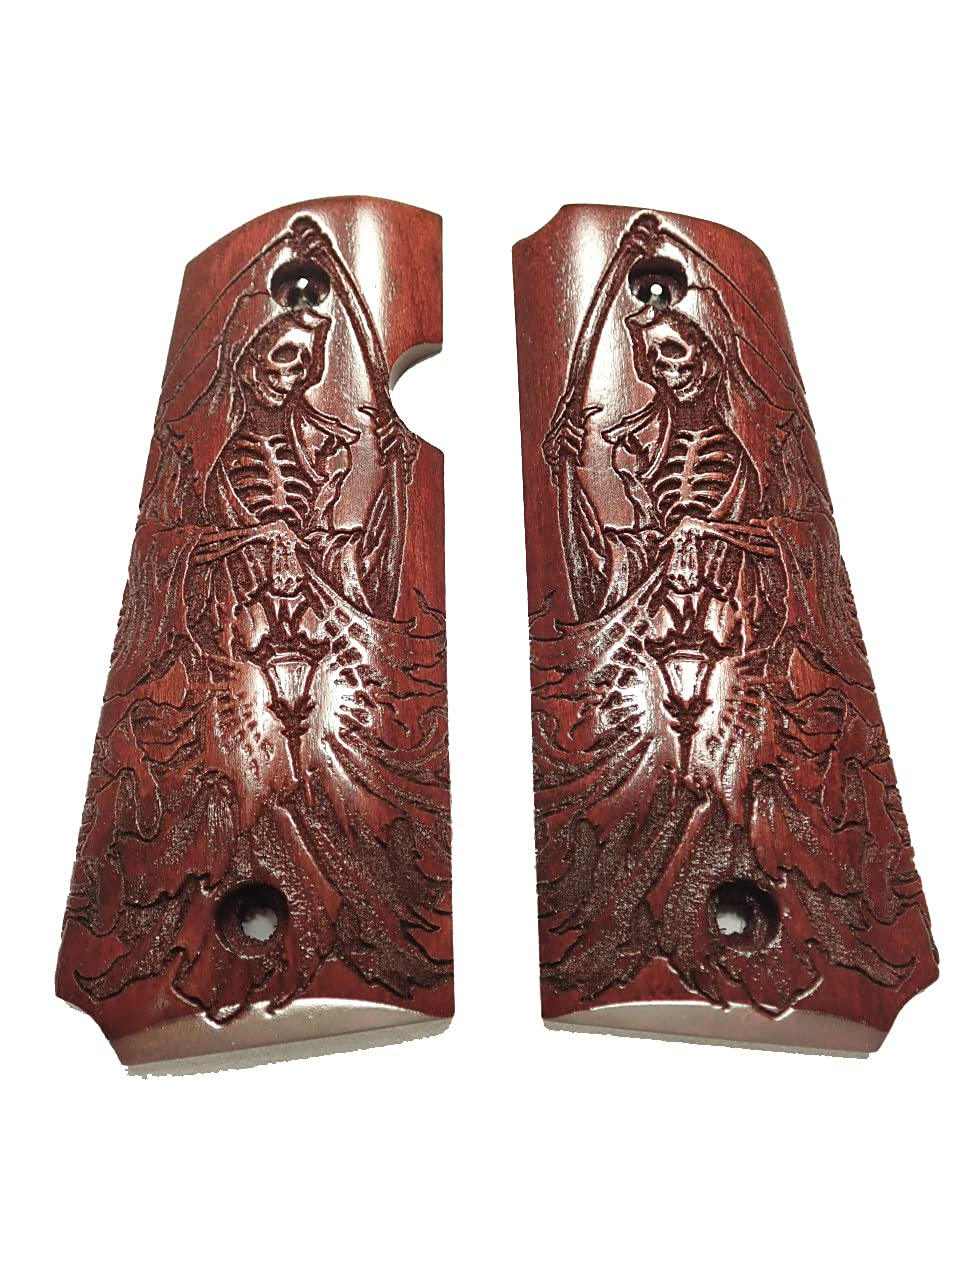 Grim Reaper Rosewood Rock Island Easy-to-use Texture 1911 Engraved 380 excellence Grips